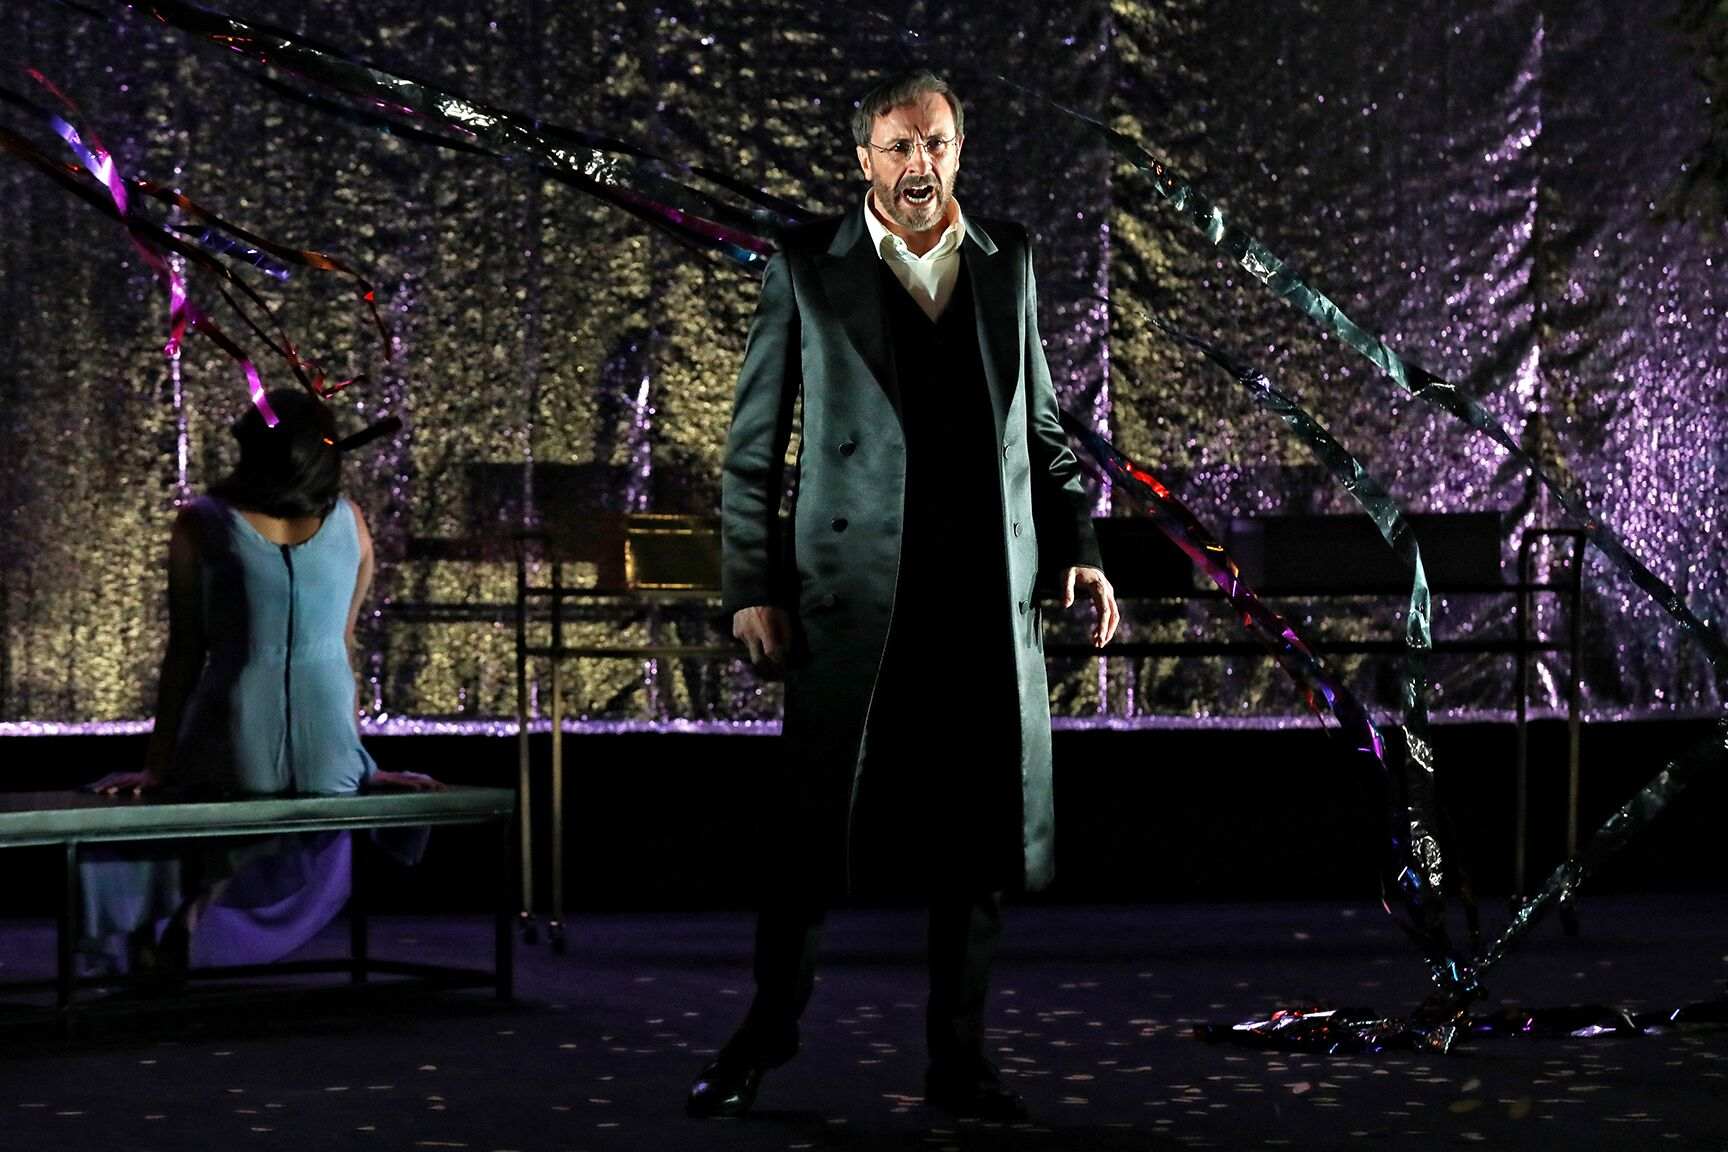 BWW Review: Bell Shakespeare's THE MERCHANT OF VENICE